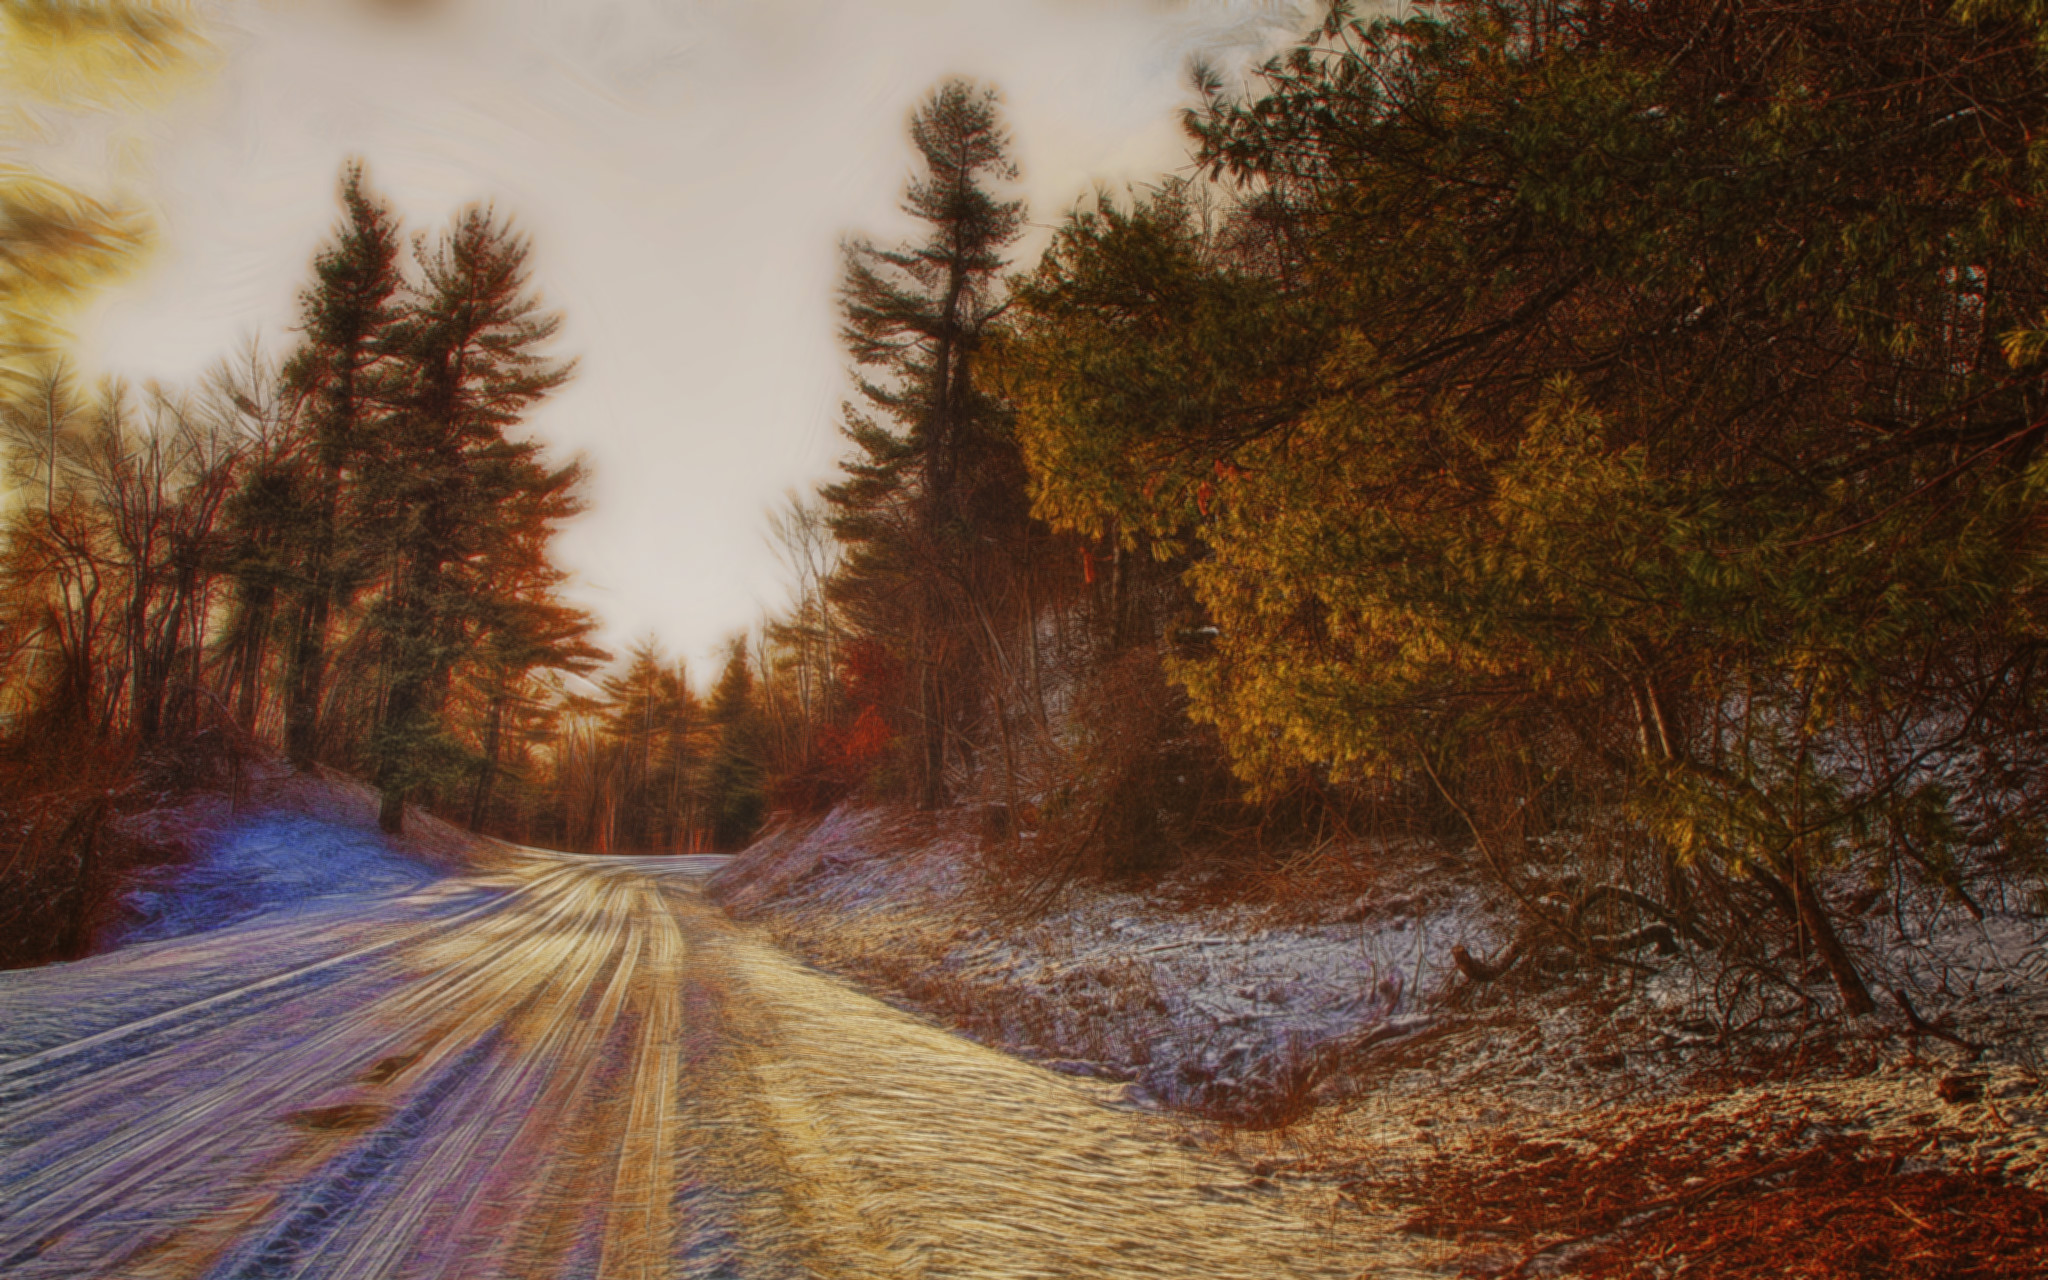 Image: A highly saturated photo of a road bending through a pine forest in winter